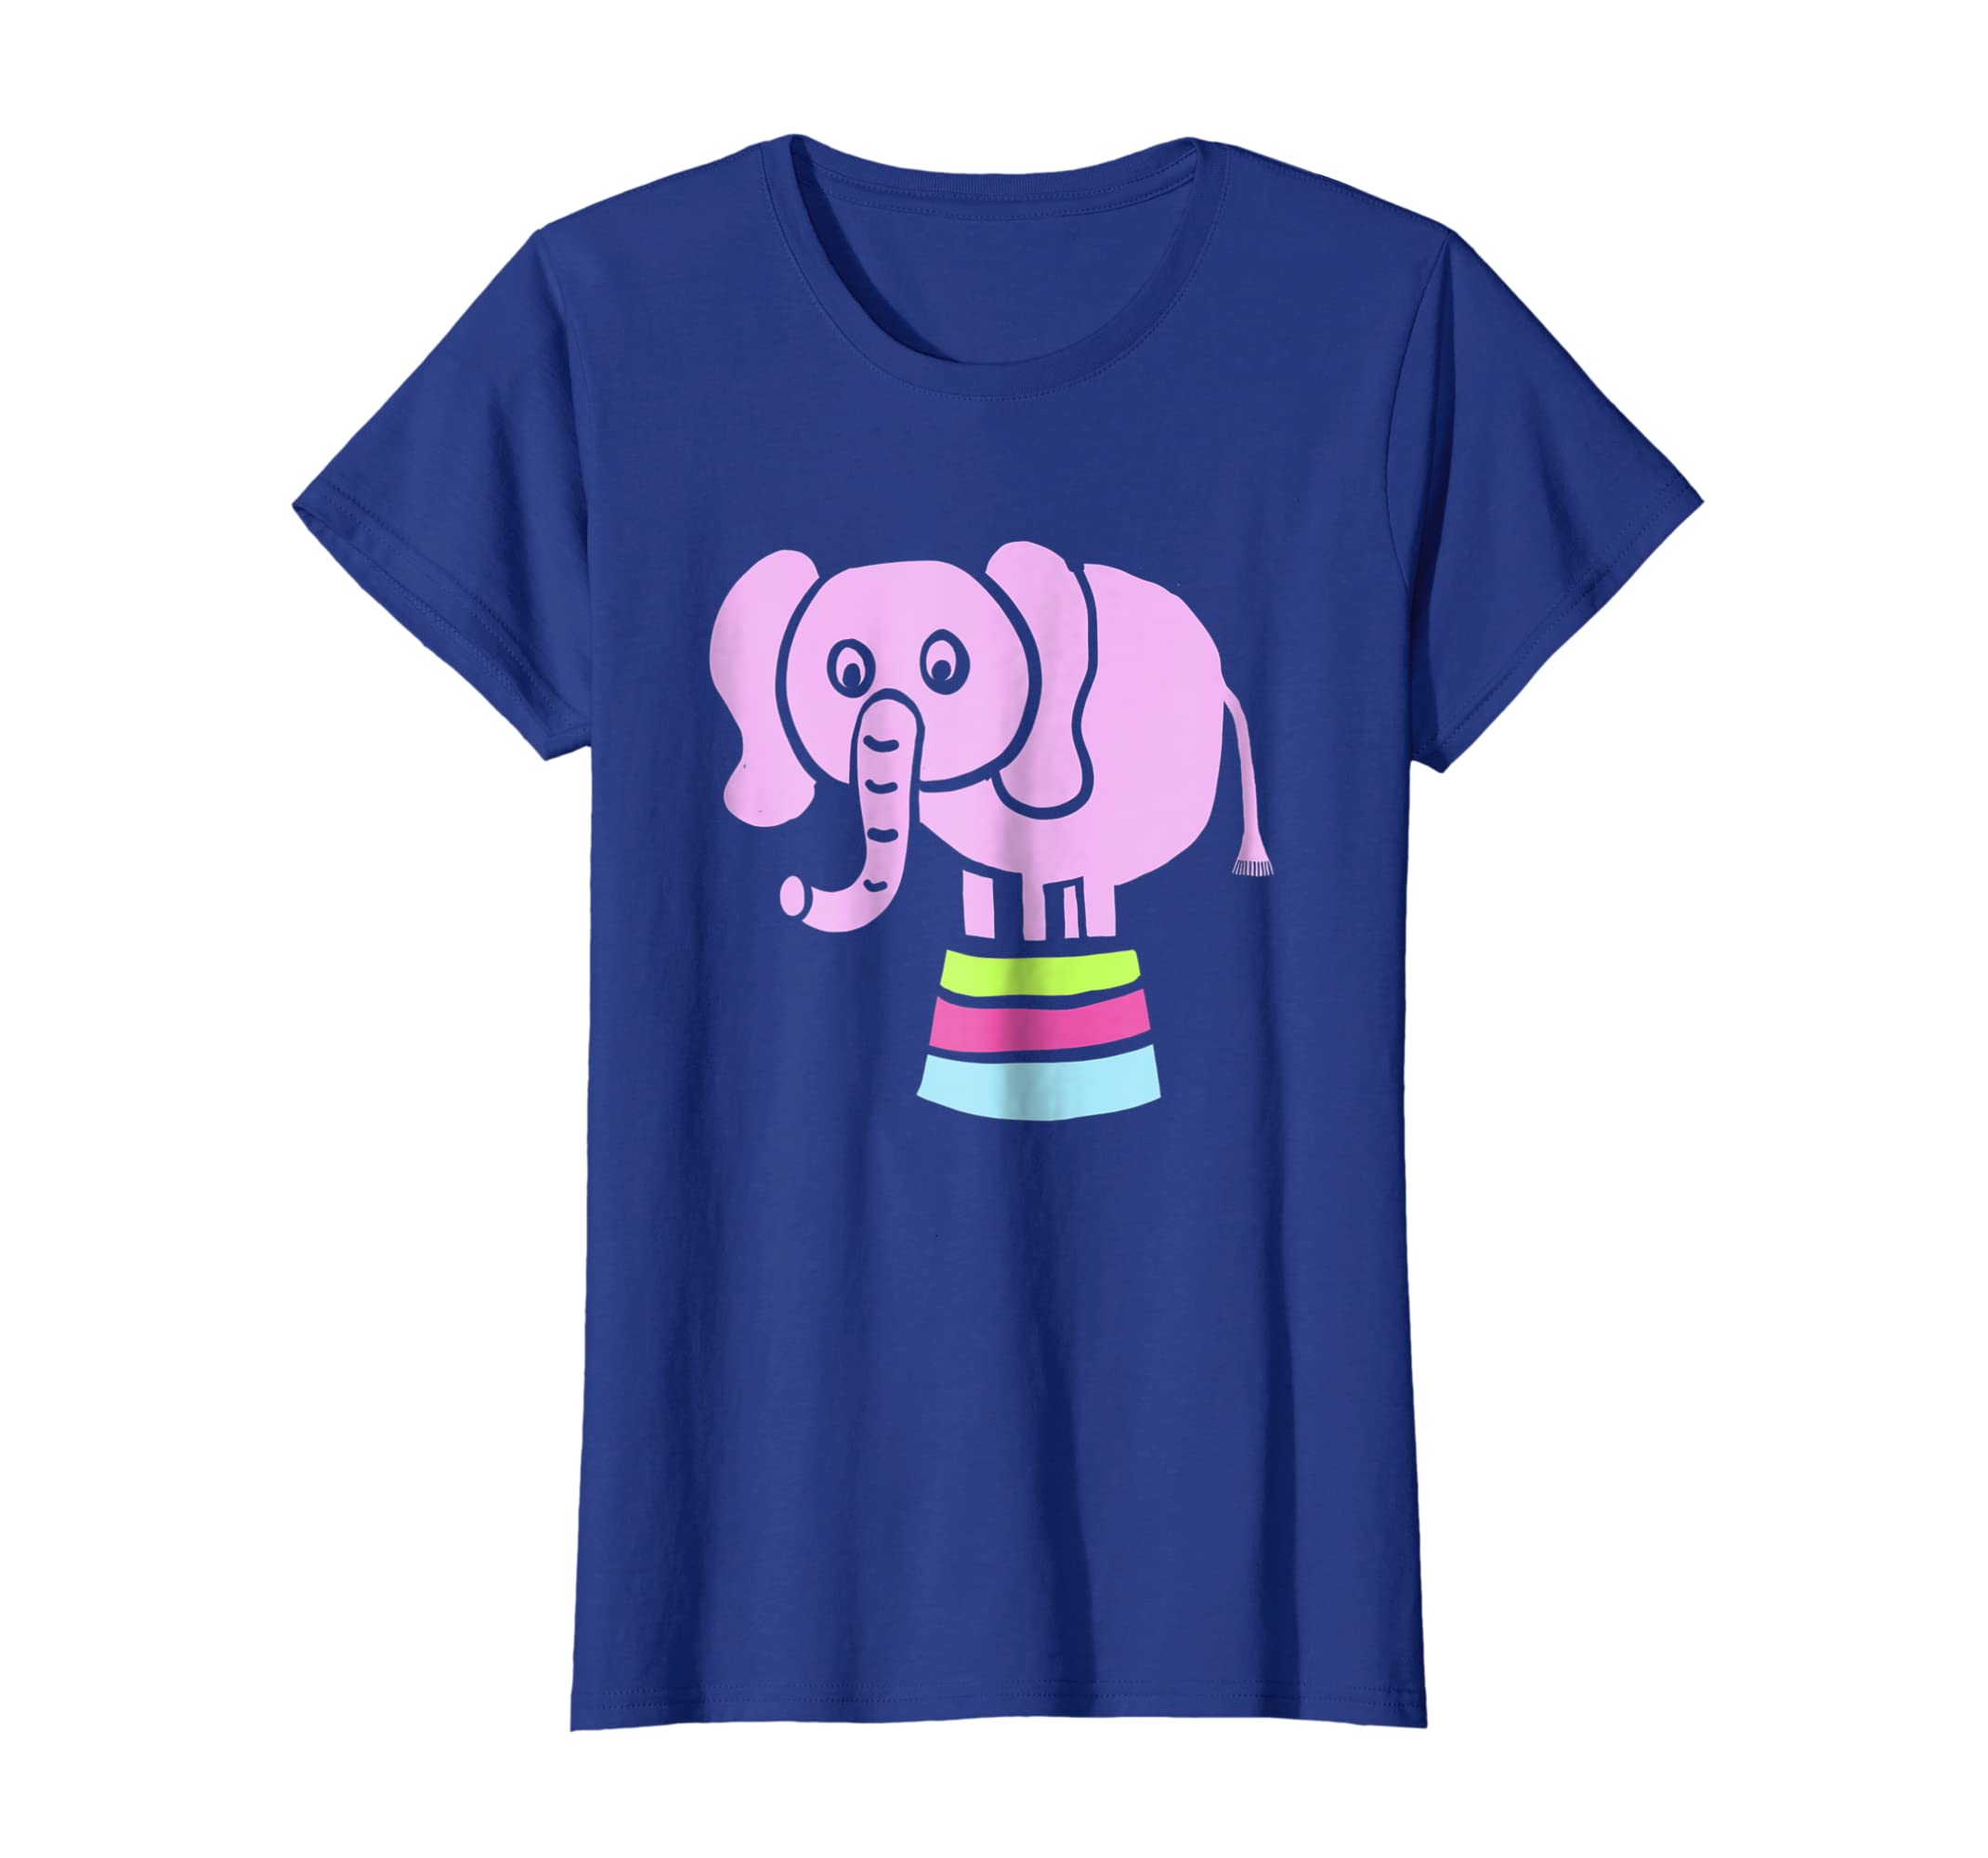 741904c2b6dcd Amazon.com  Circus Elephant T-shirt - by Animal Face Shirt  Clothing